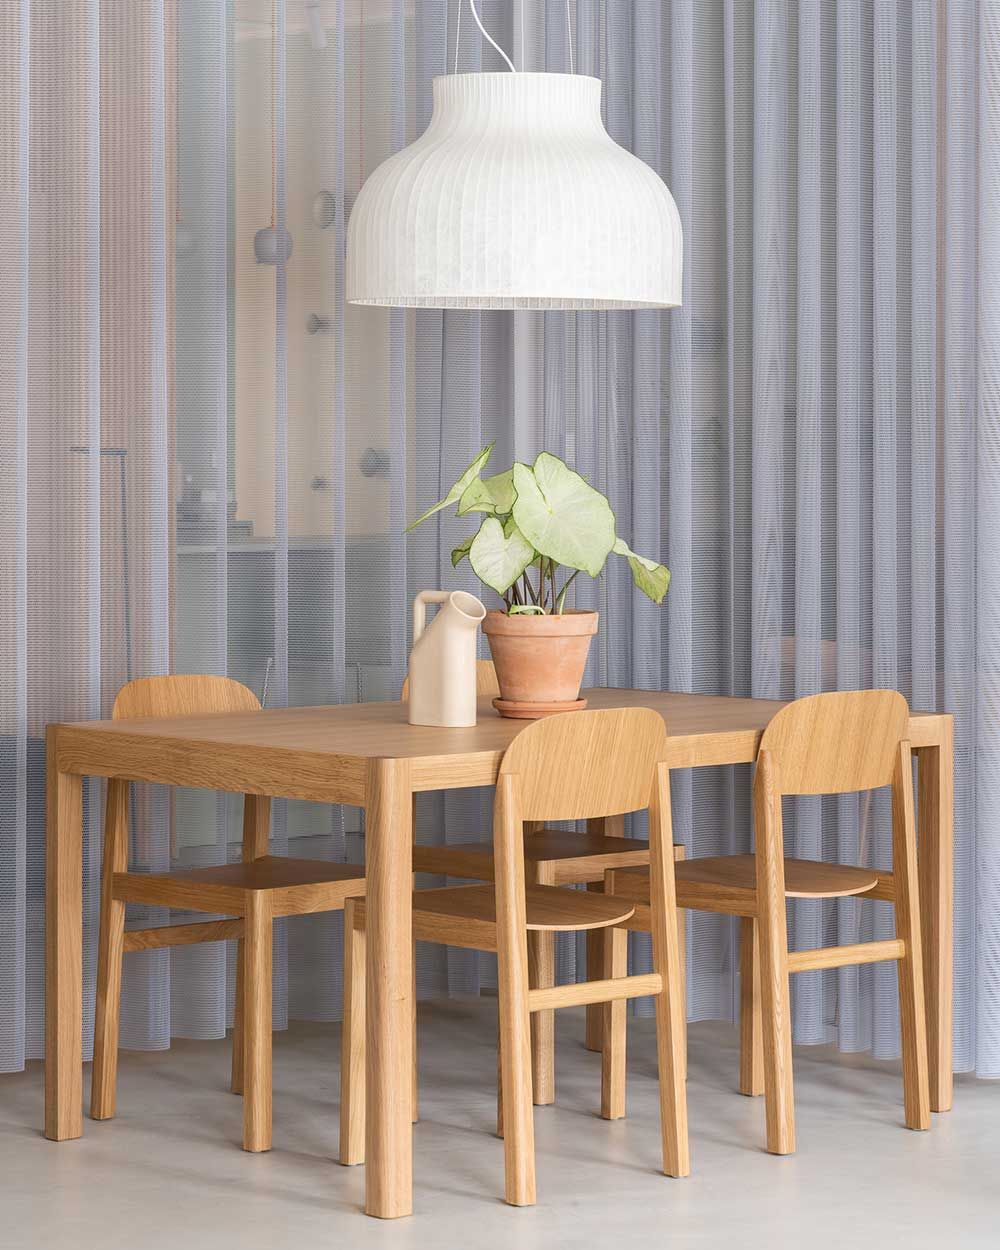 The Workshop Table Joins Together The Ideals Of Scandinavian Craftsmanship And S In 2020 Dining Room Decor Modern Scandinavian Furniture Design Dining Room Inspiration